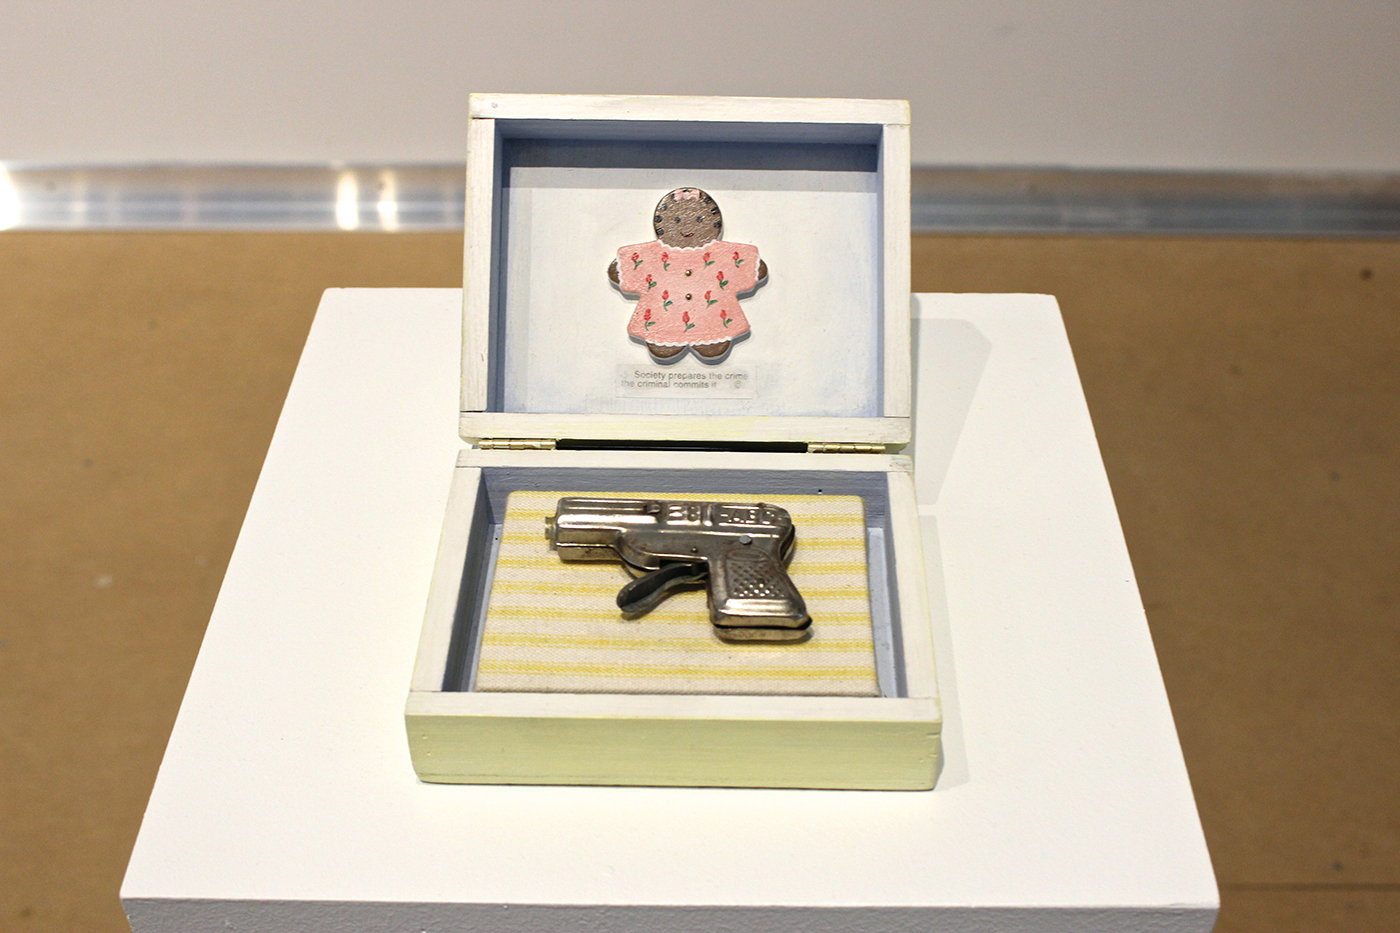 Baby's First Gun (1998) by Renee Stout